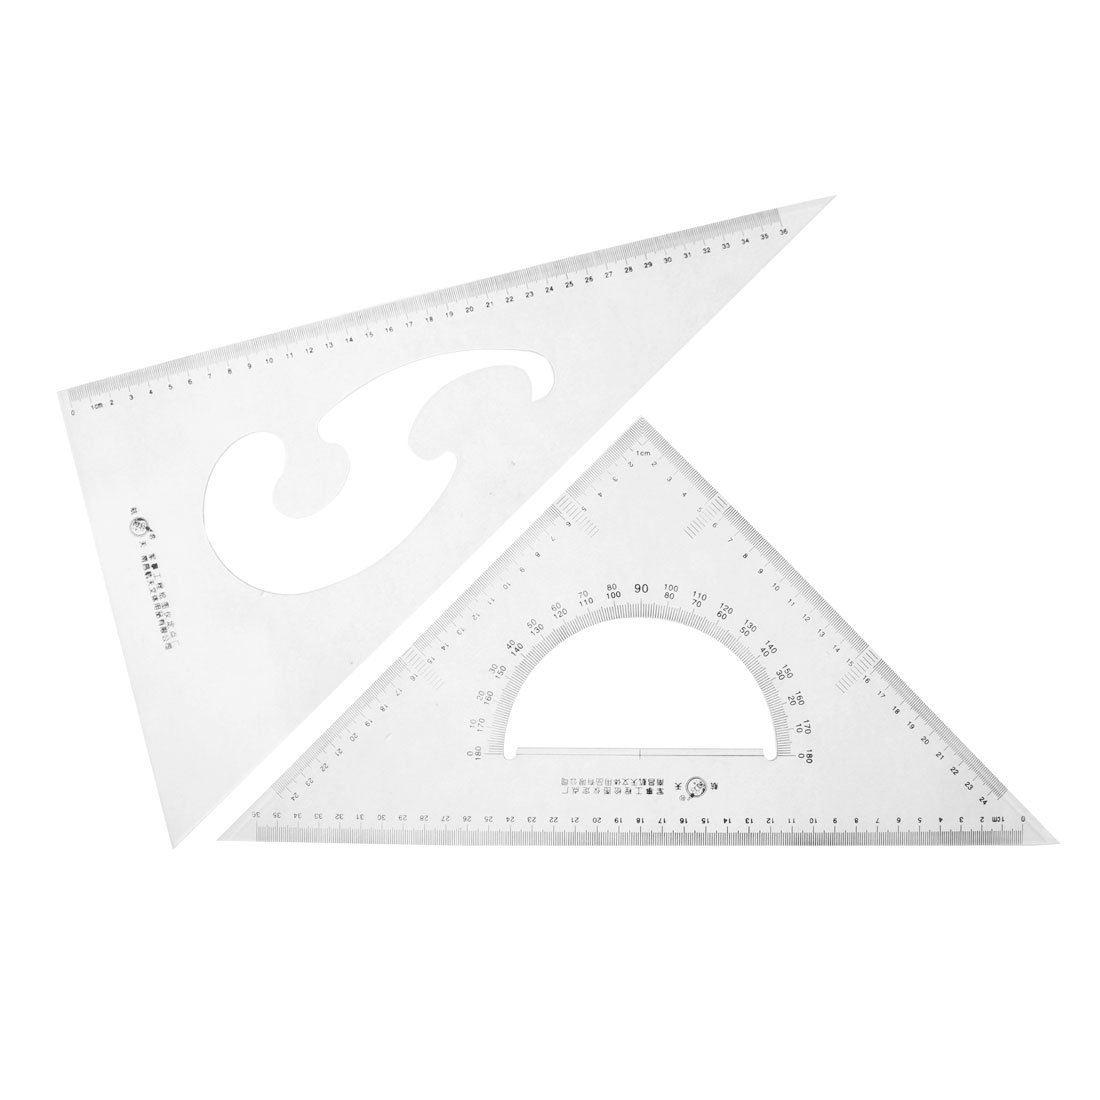 uxcell Plastic 30/60 45 Degree Triangle Rulers Protractor Drawing Tool 2 Pcs